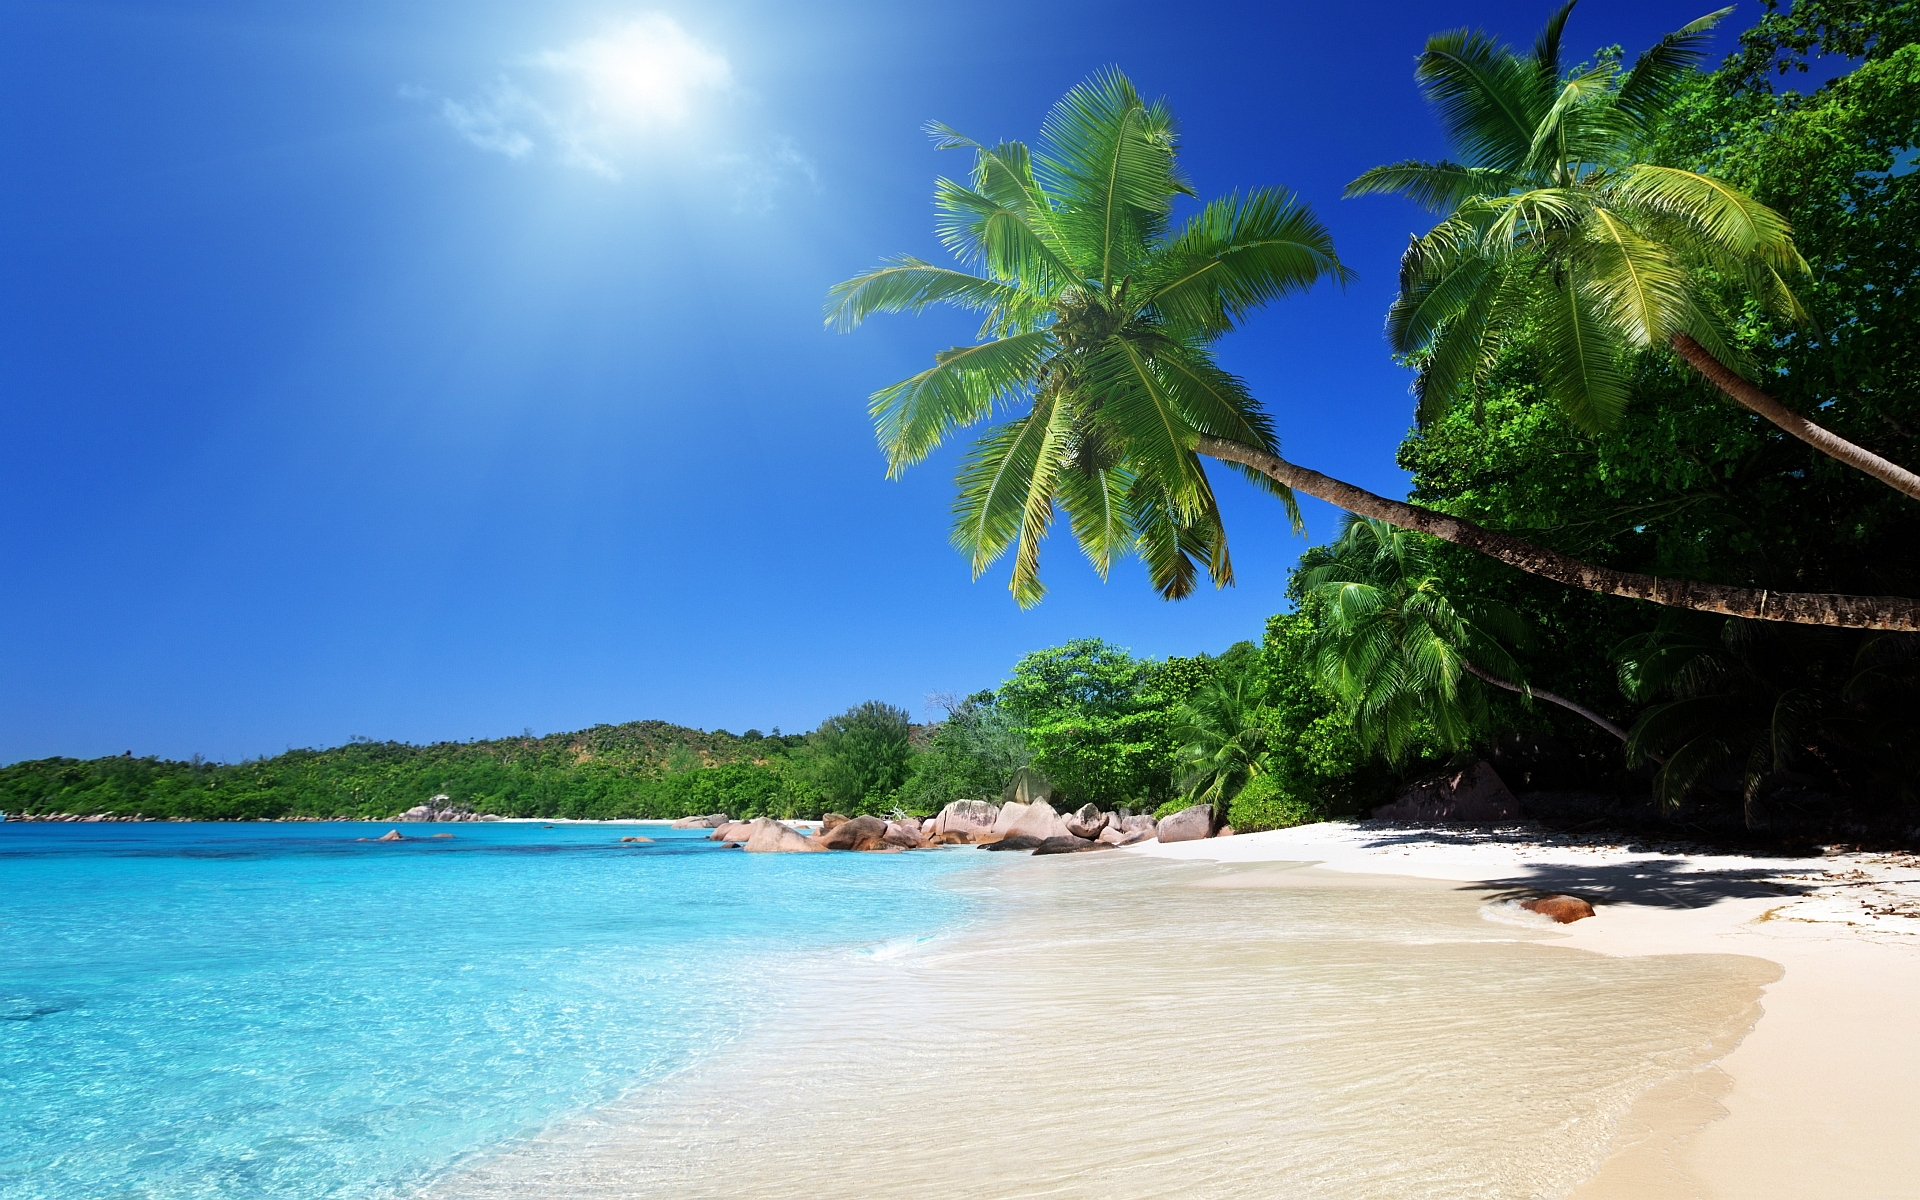 Beautiful Beaches In The World Wallpaper Free Desktop 8 HD Wallpapers